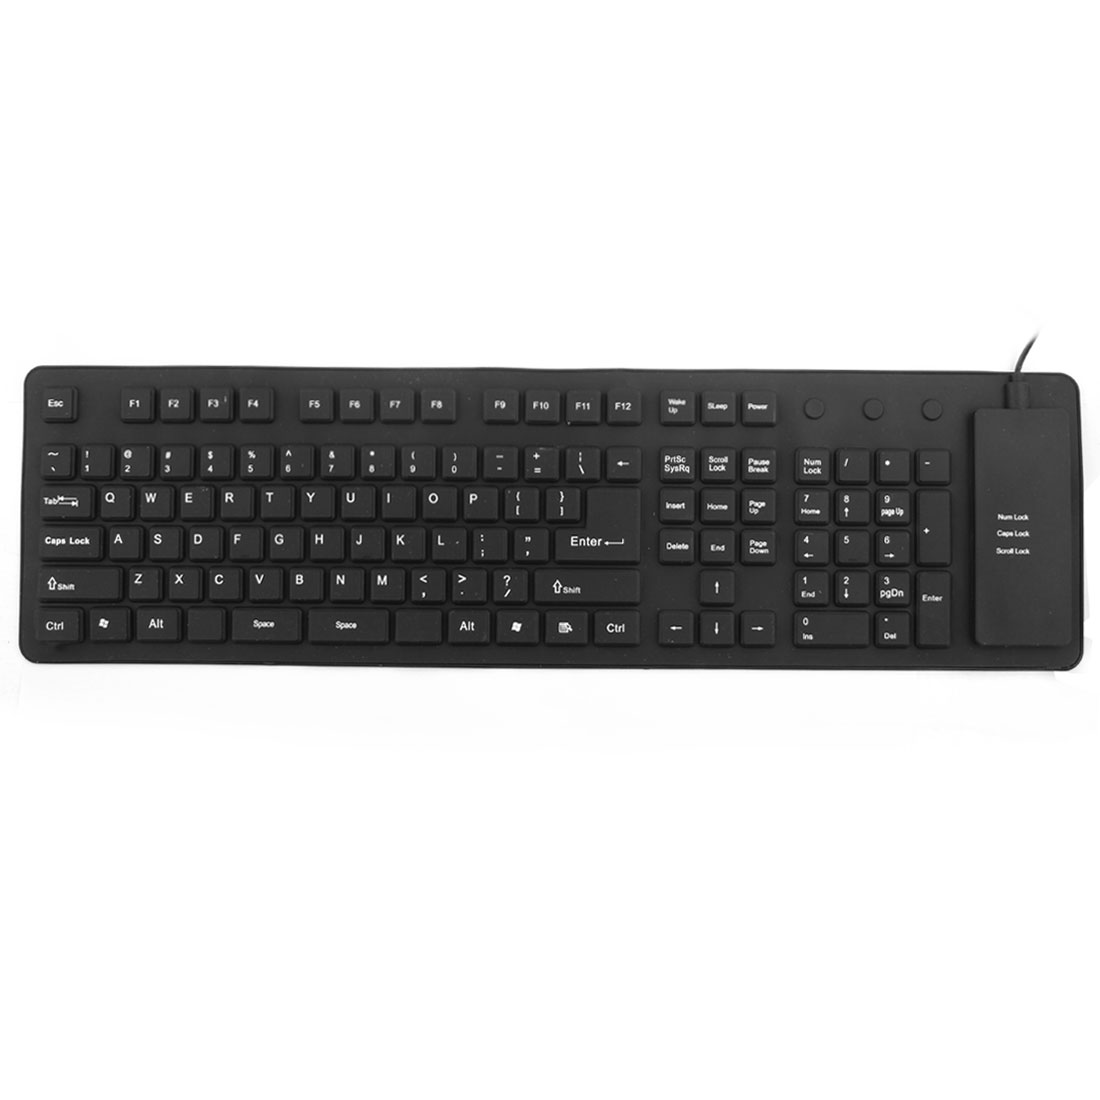 Unique BargainsFoldable Flexible 109 Keys USB Wired Roll up Silicone Keyboard Black for Laptop